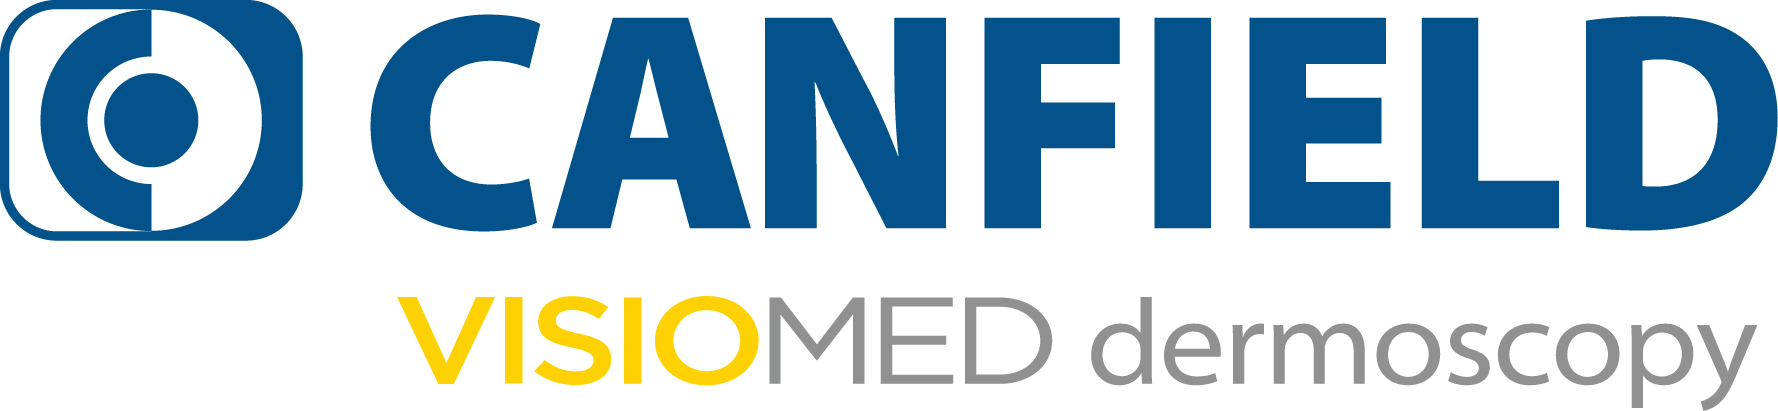 Canfield Scientific Acquires Leading German Dermoscopy Company VISIOMED AG